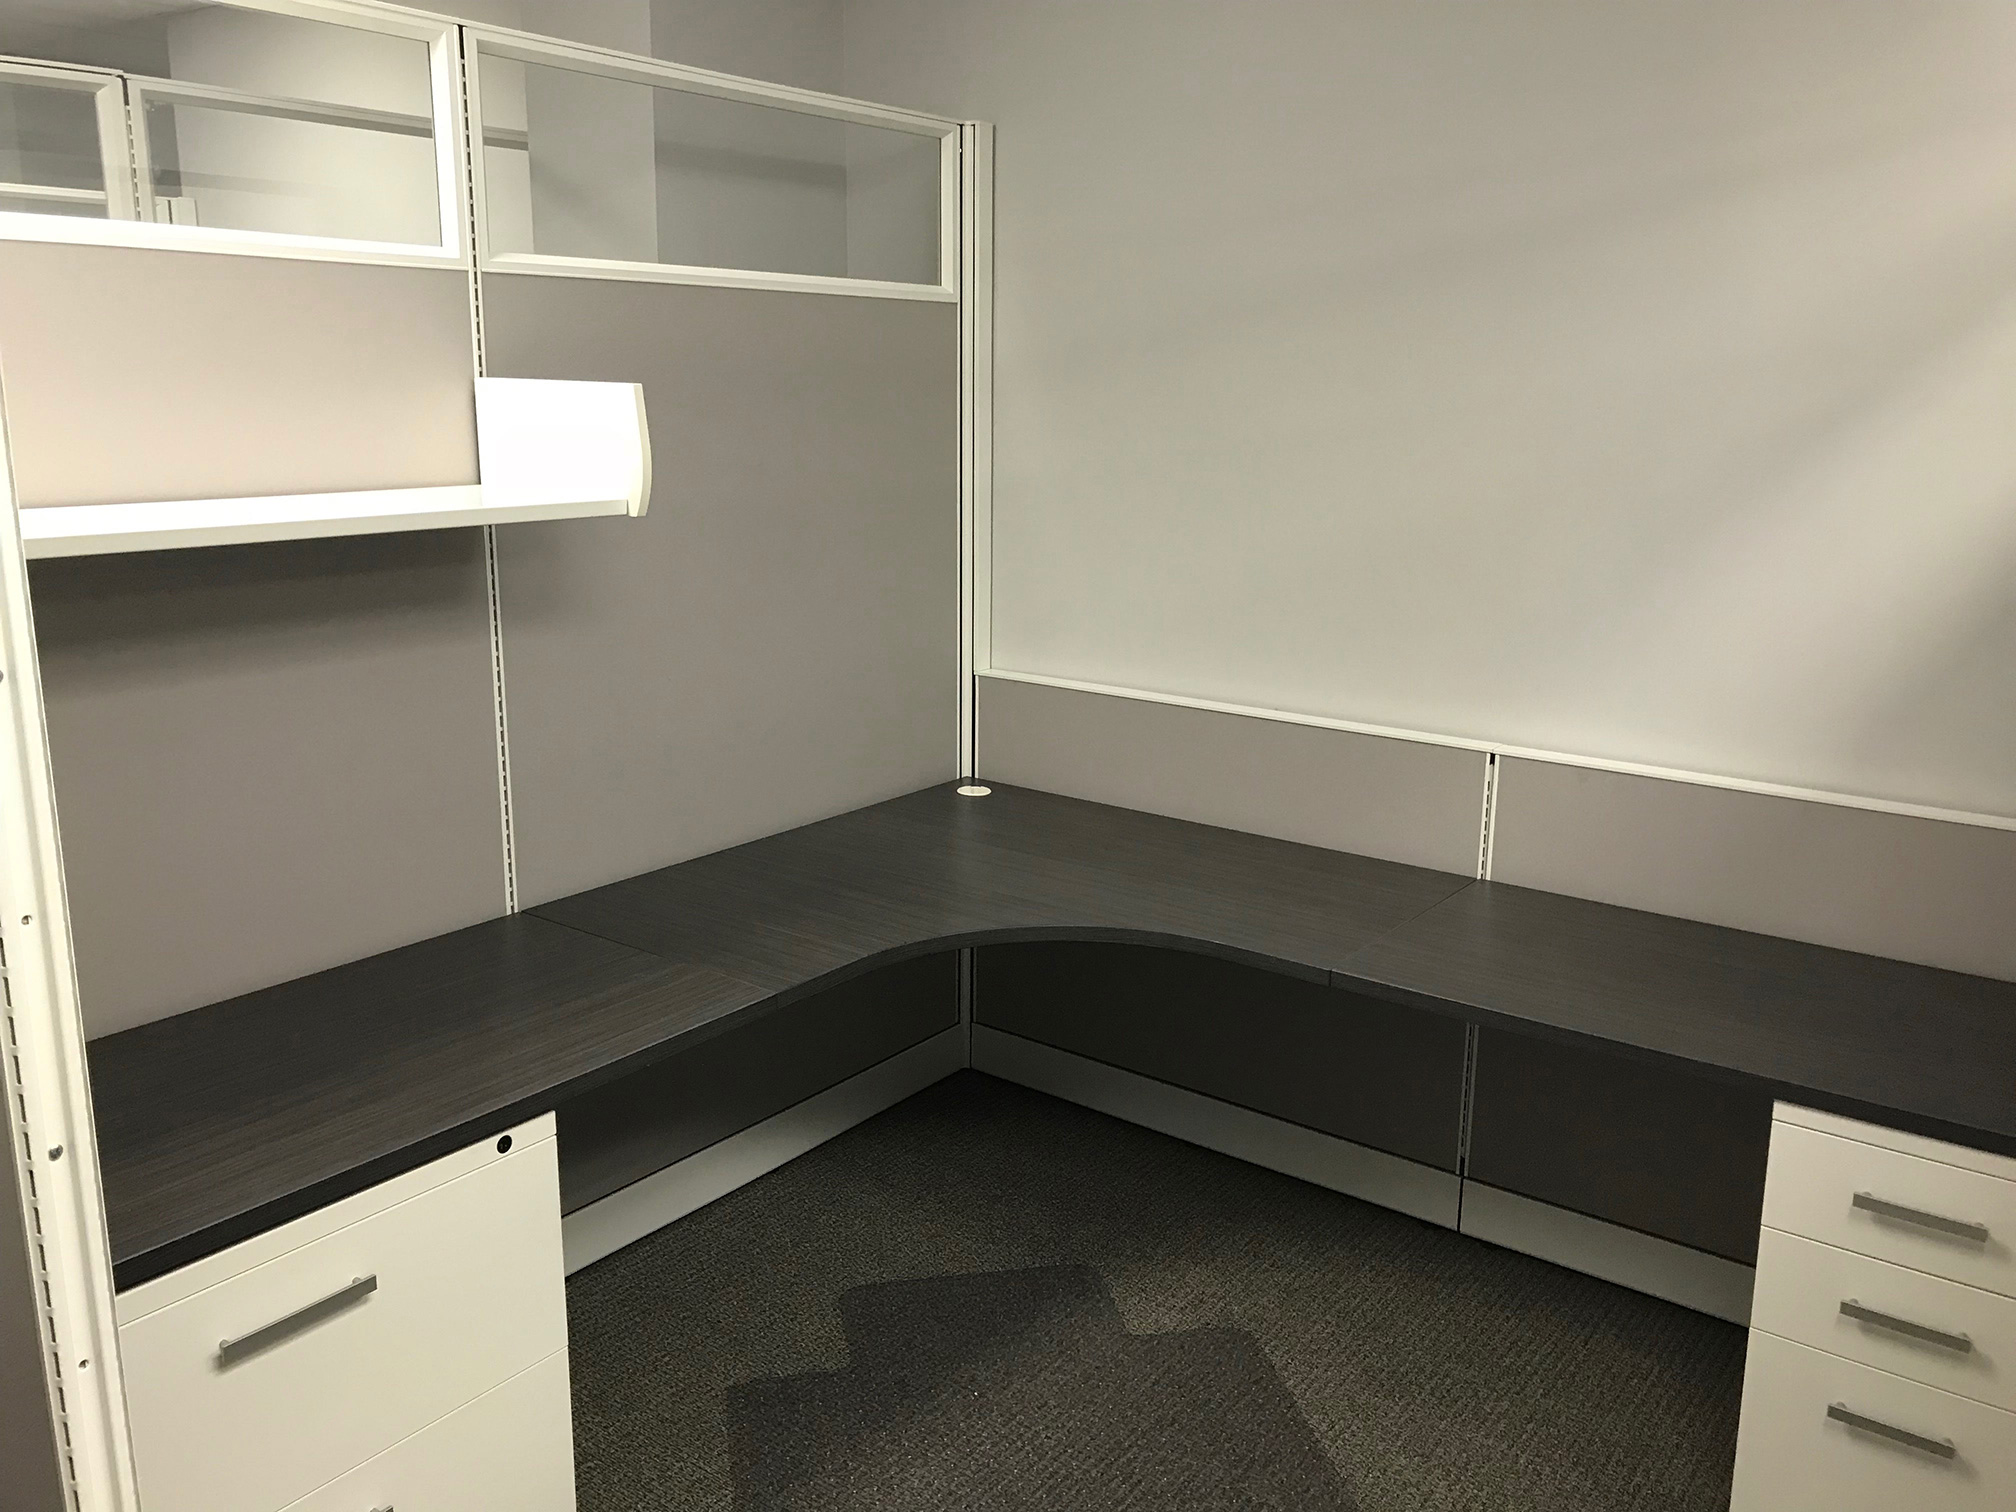 office-cubicles-for-sale-in-vero-beach-florida-3.jpg